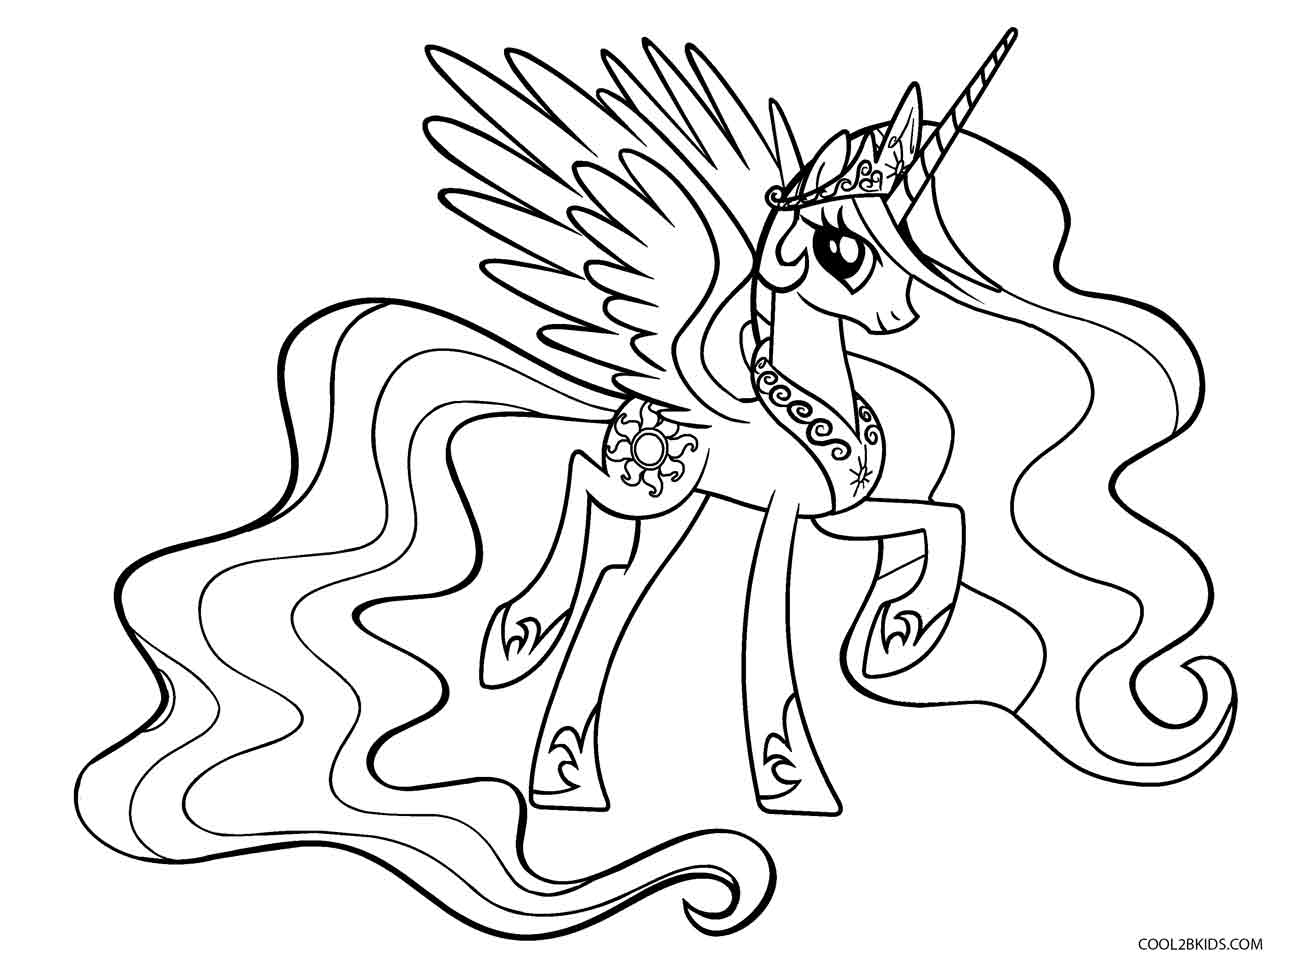 free printable my little pony coloring for kids mlp princess celestia discover fun crafts coloring pages Mlp Coloring Page